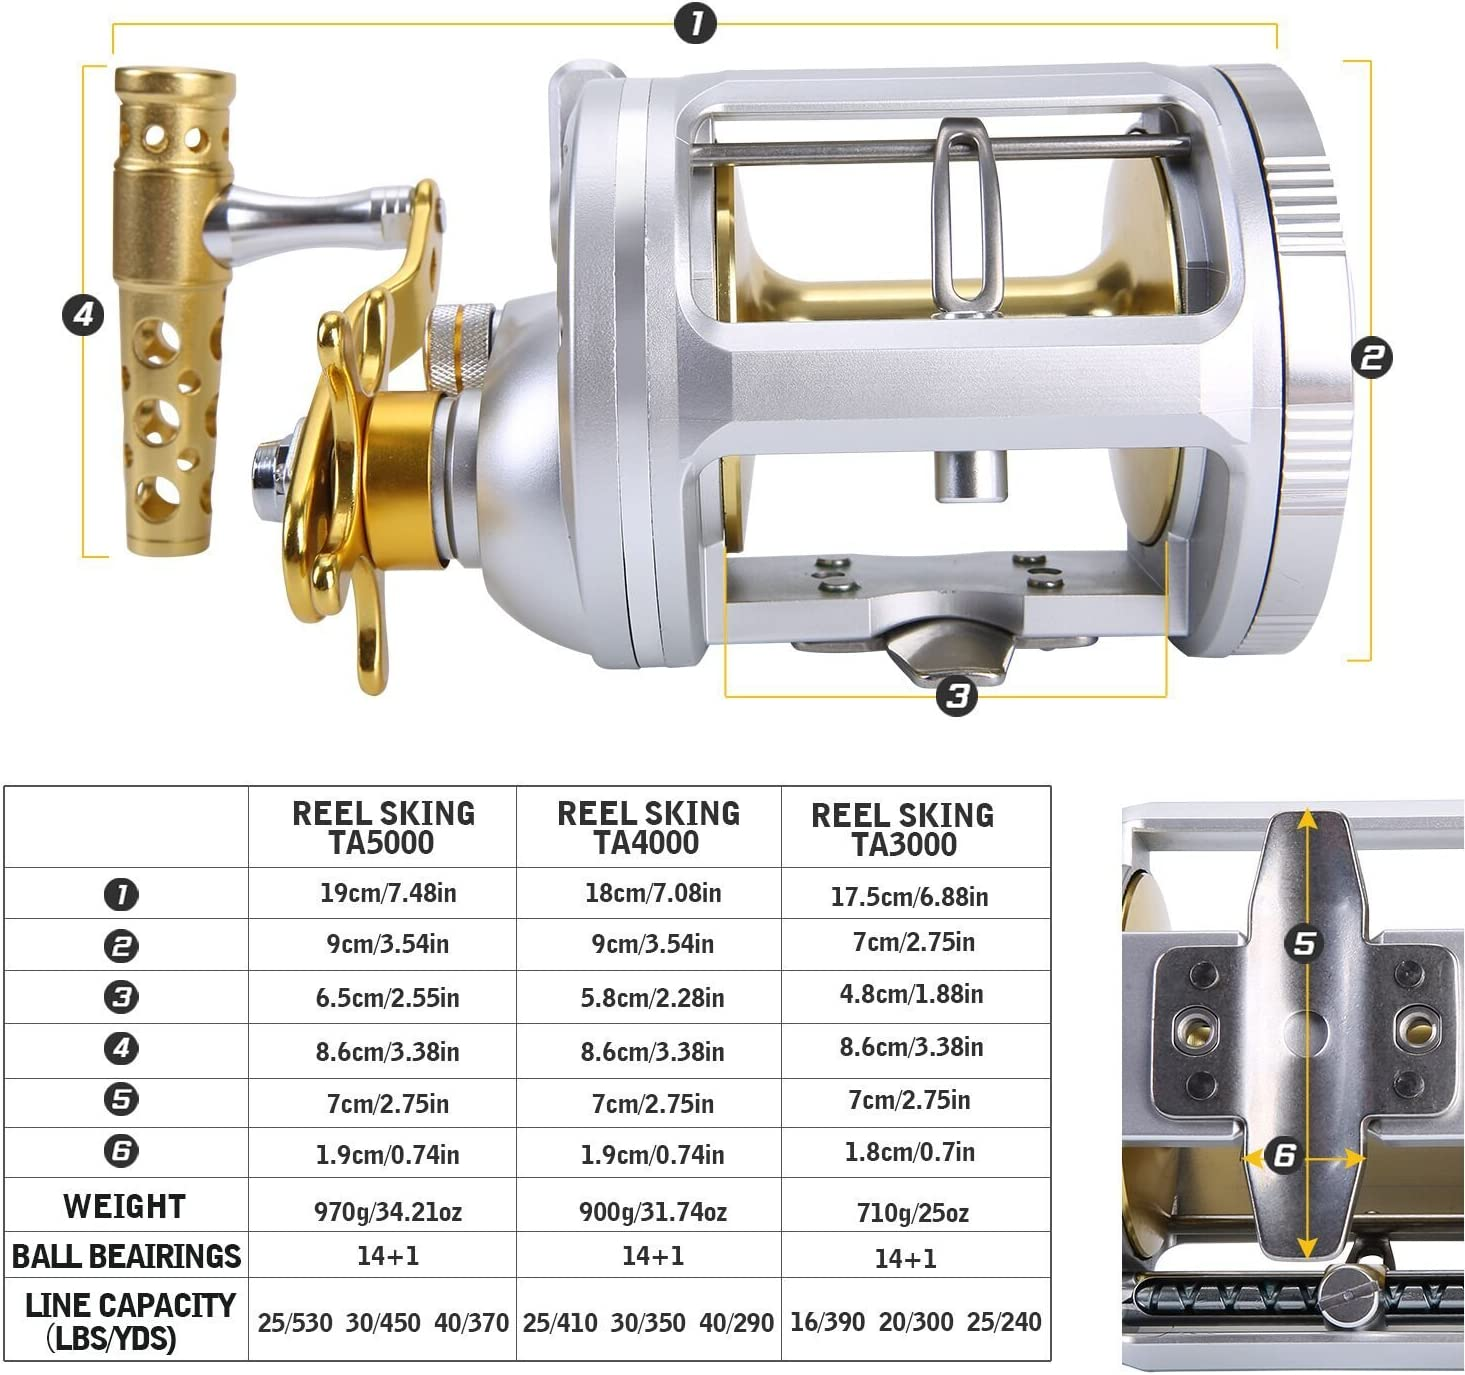 One Bass Fishing Reels Level Wind Trolling Reel Conventional Jigging Reel for Saltwater Big Game Fishing-Right Handed